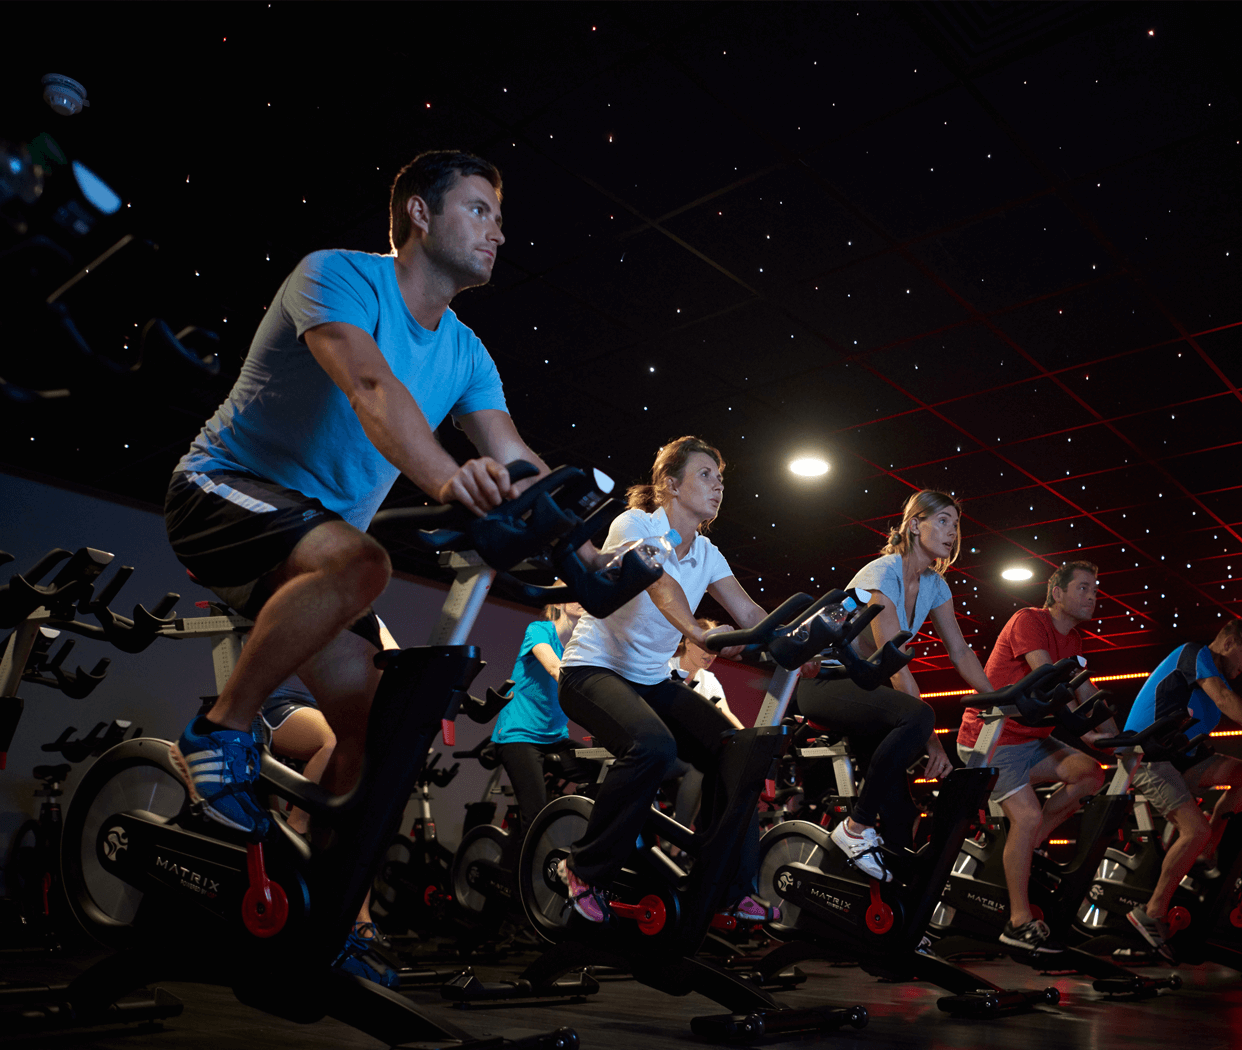 Sufferfest - Extra Shot:20 - Virtual® Studio - Race Simulation